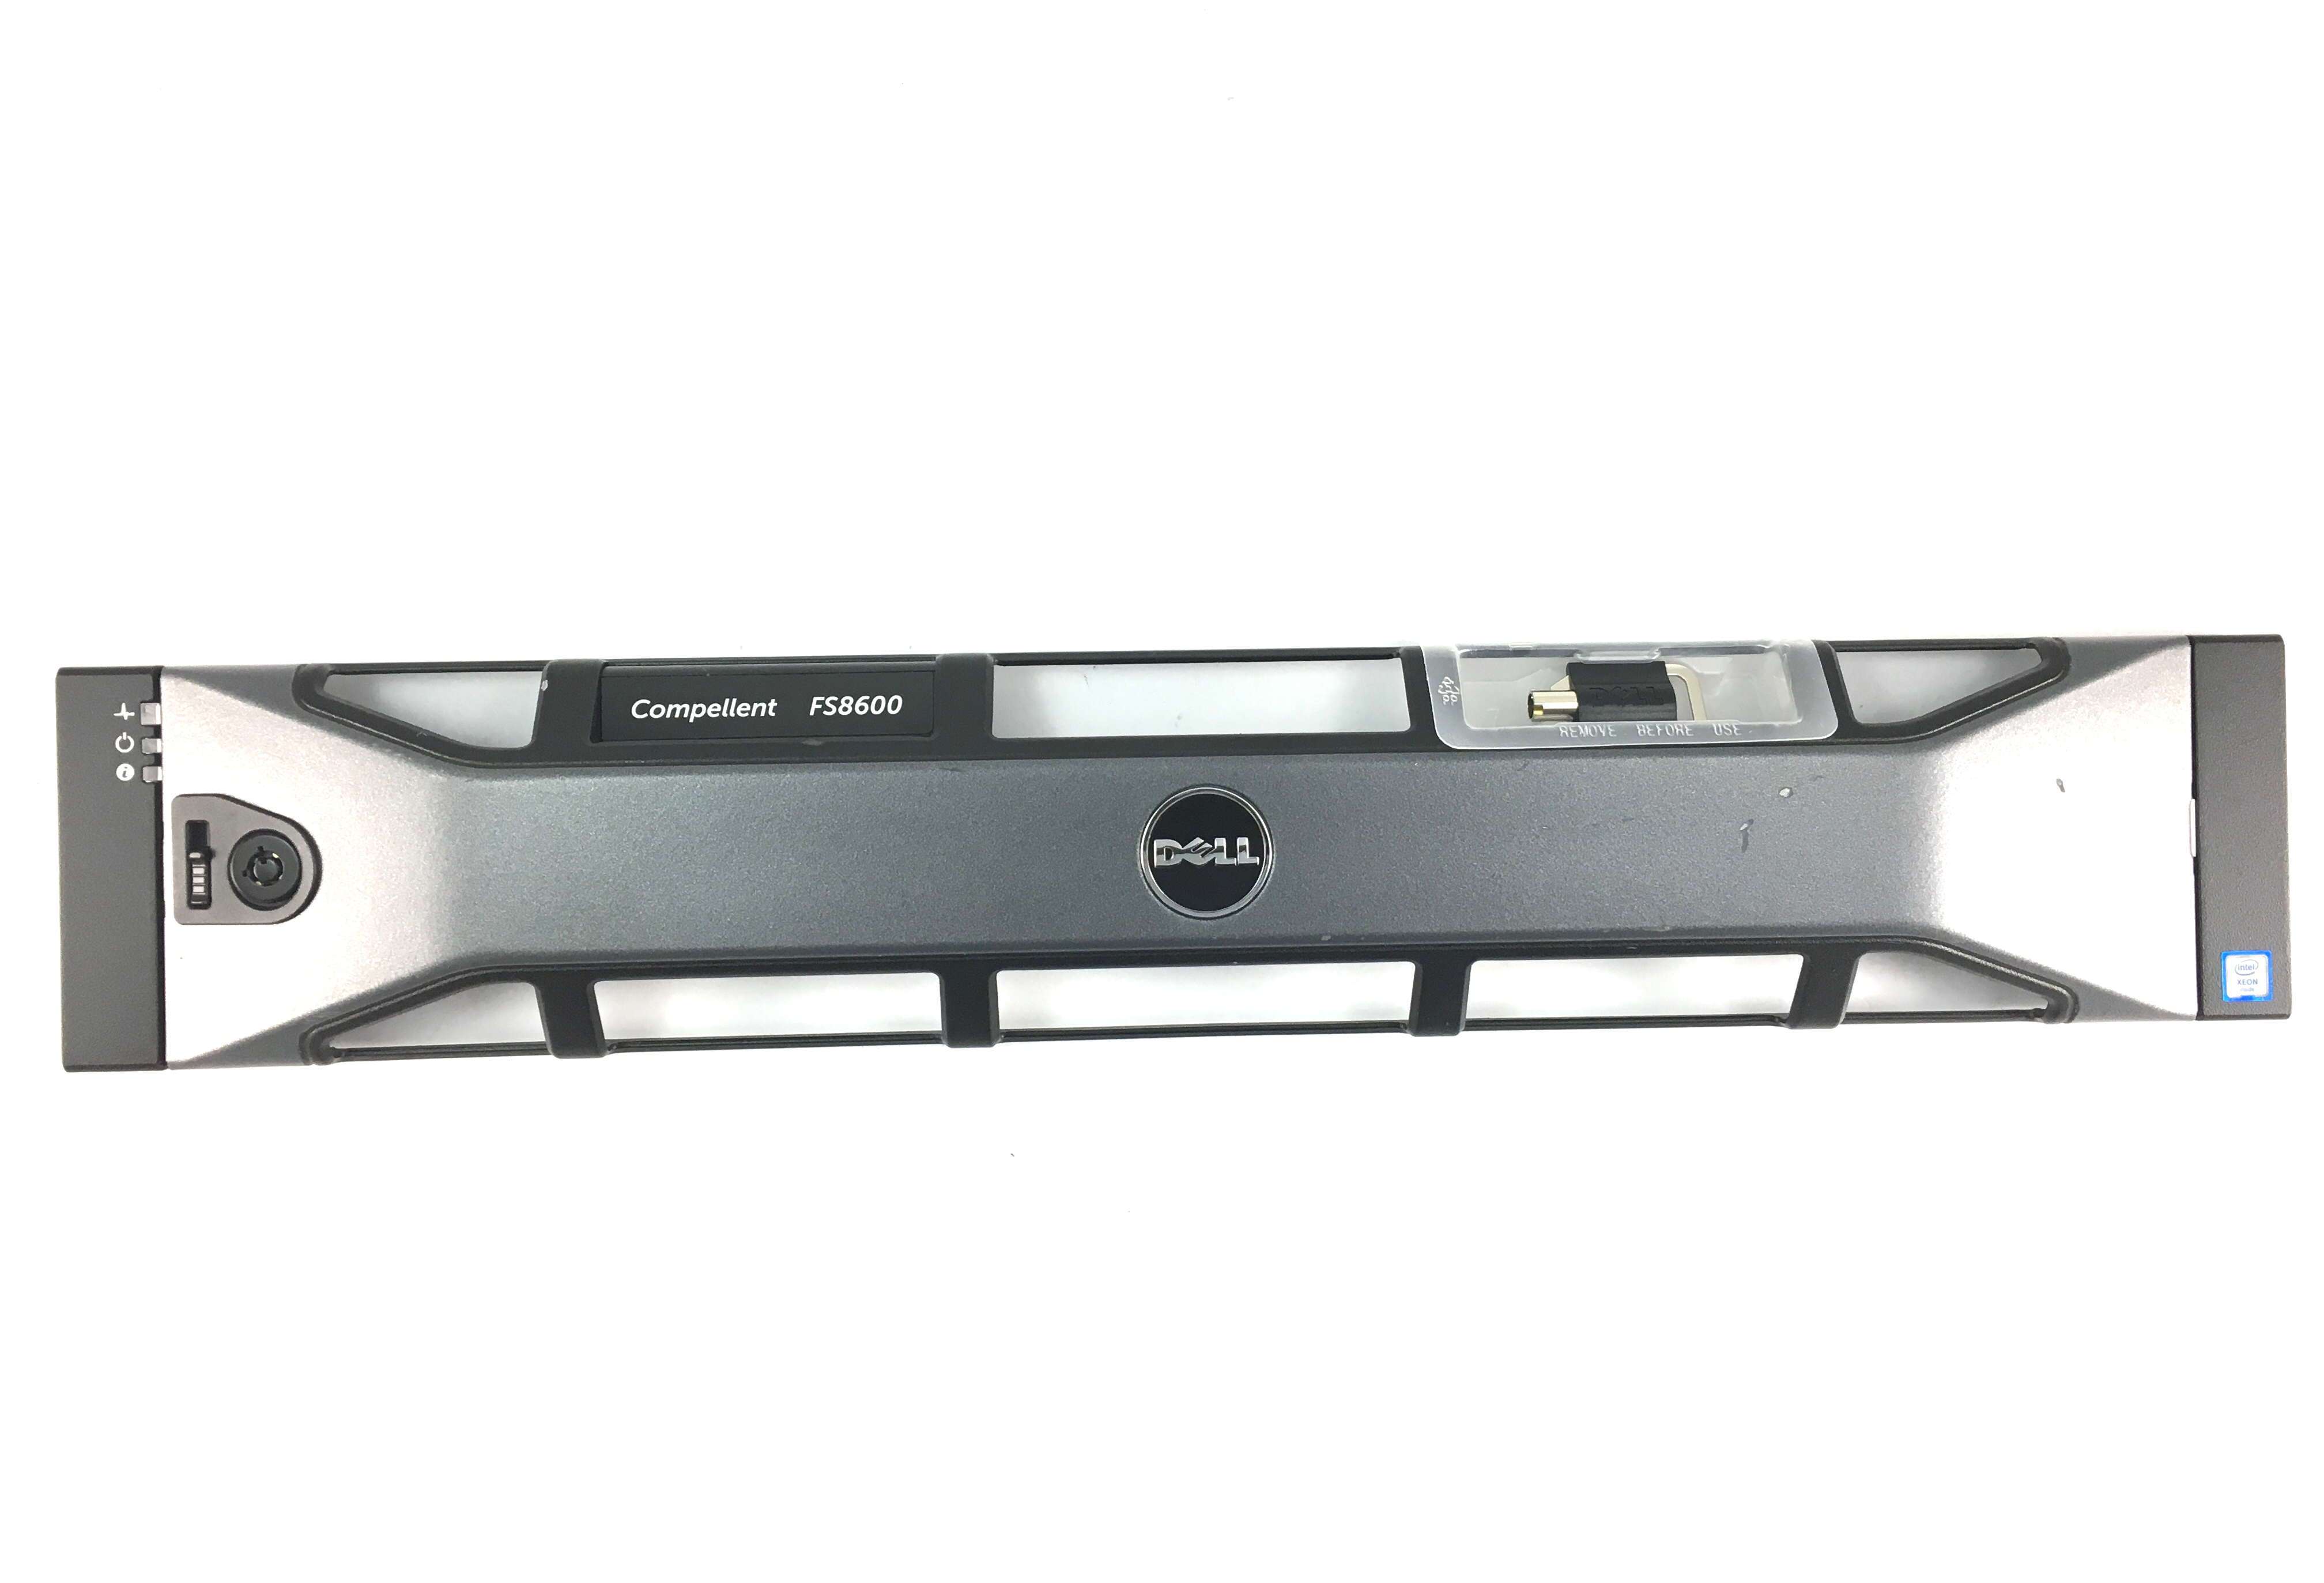 New Dell Compellent Fs8600 Front Bezel Faceplate (XN8H4)